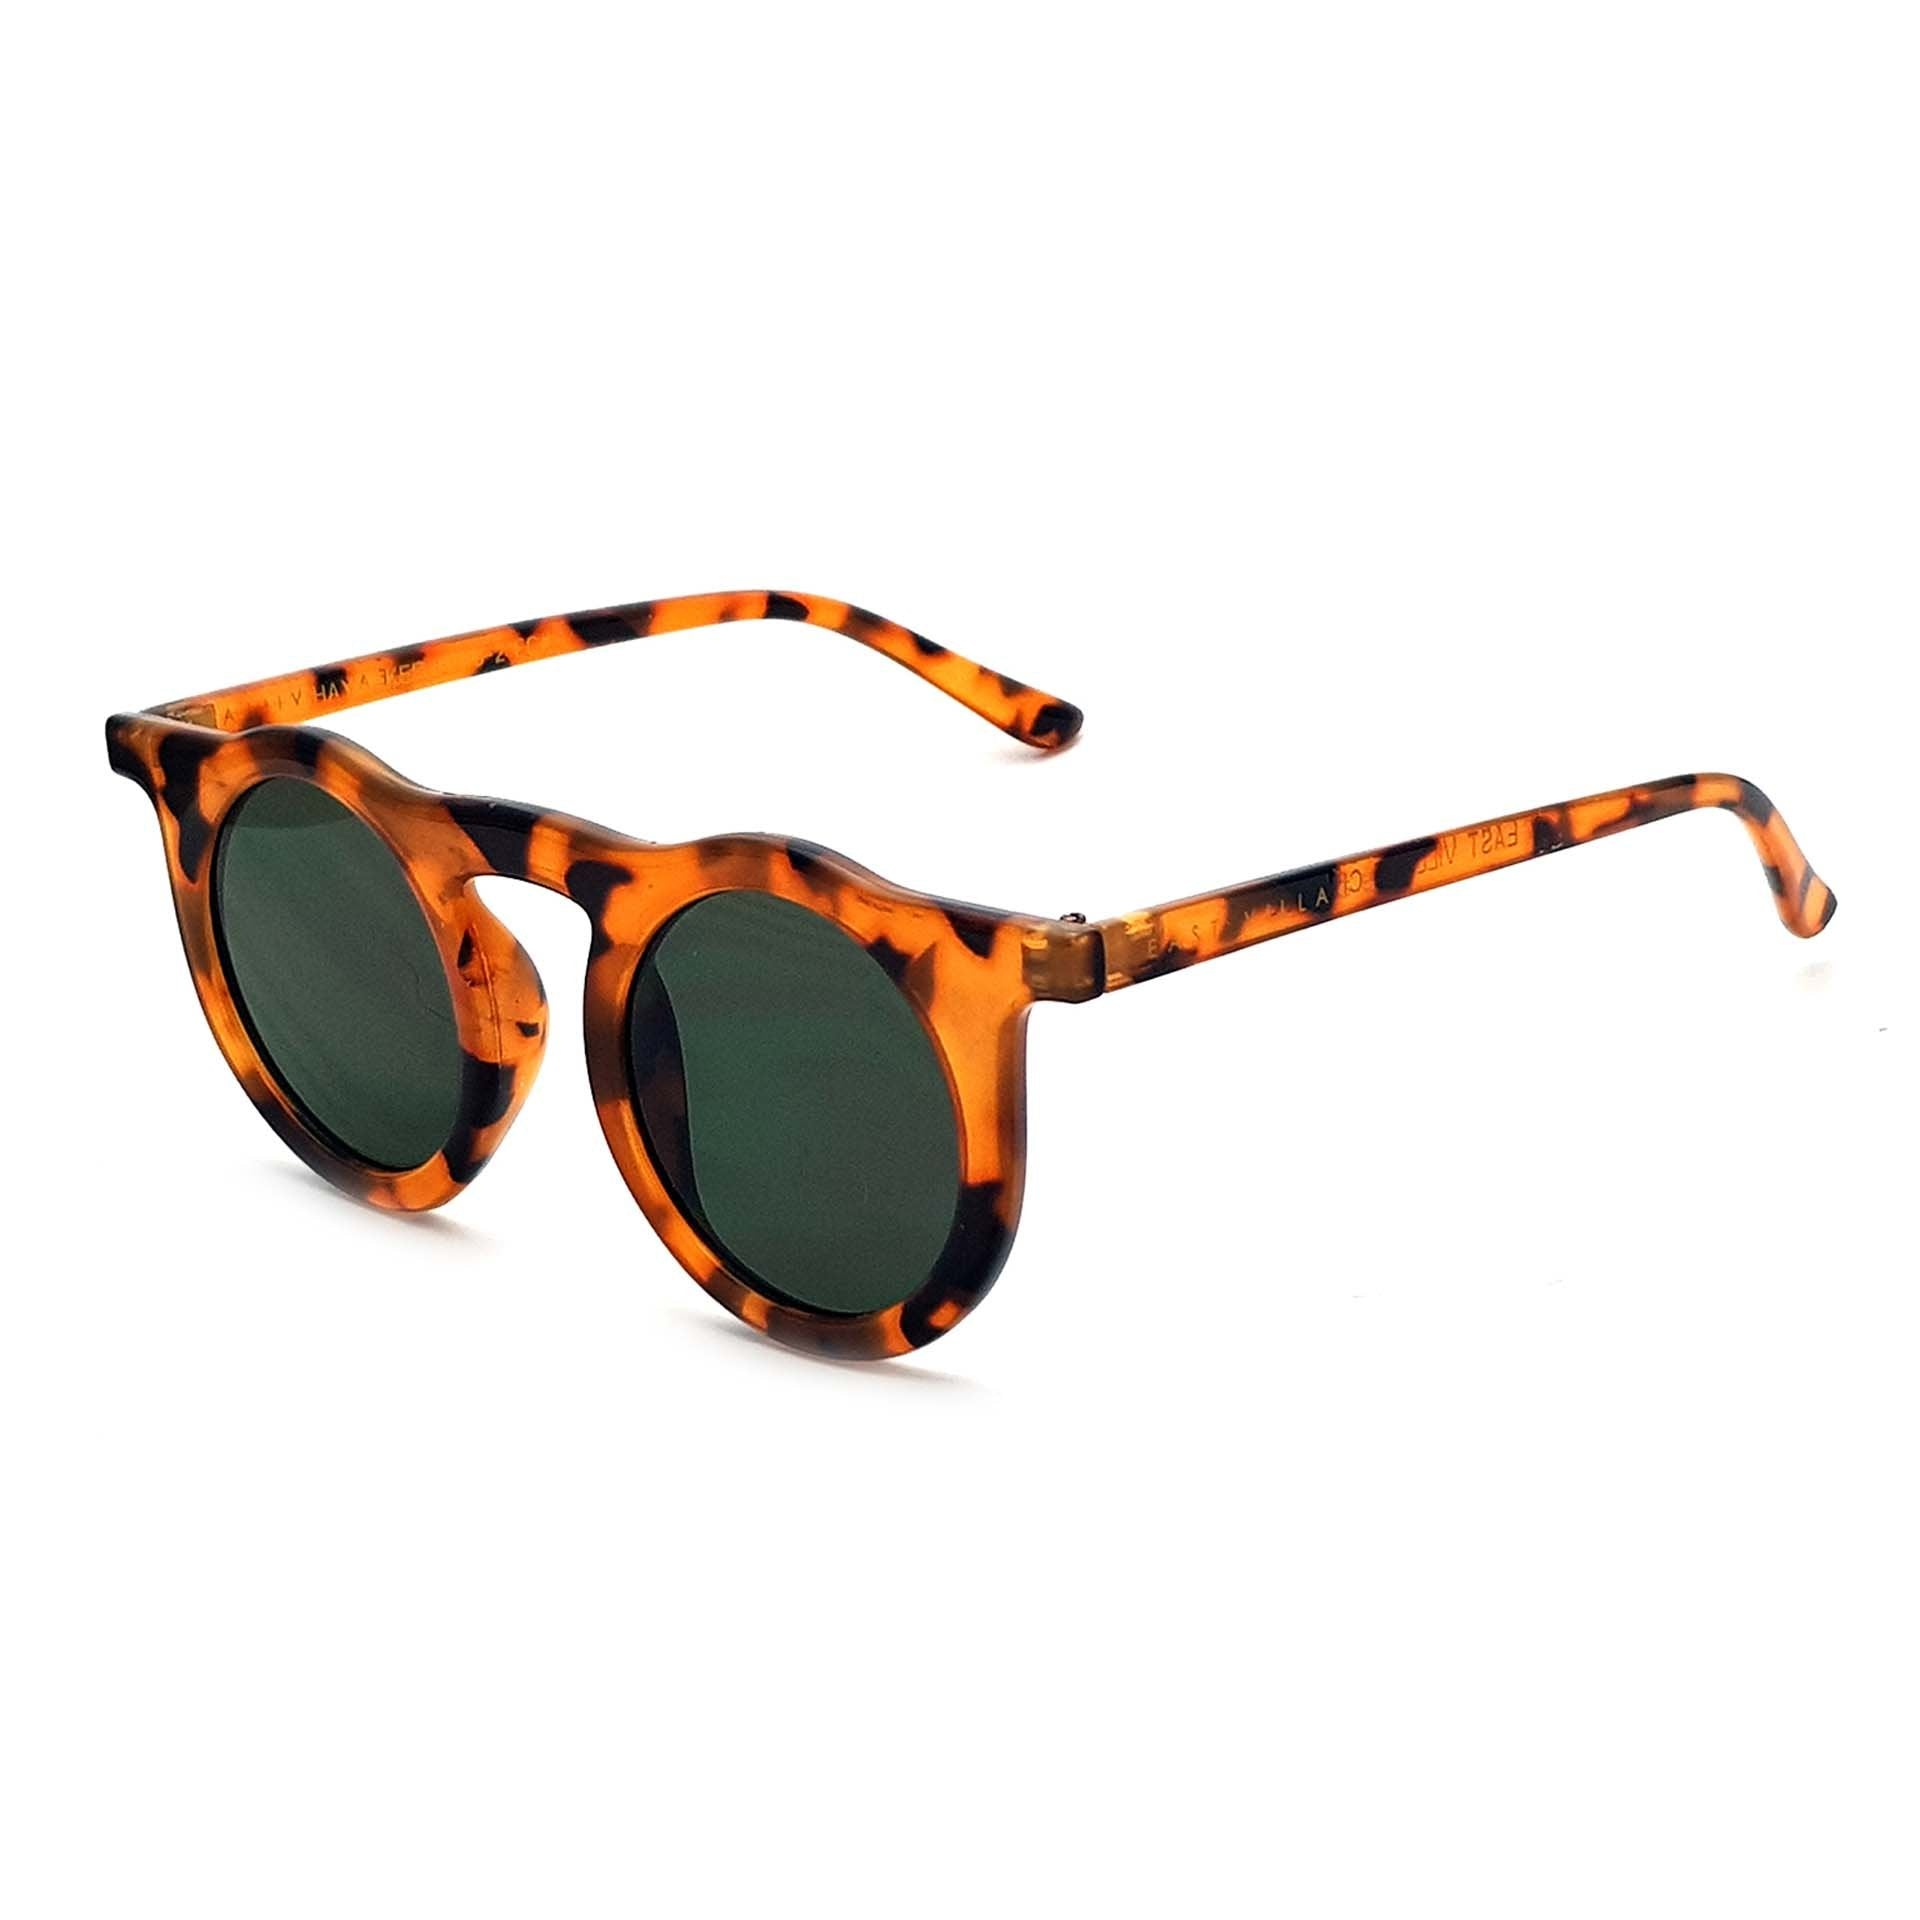 'Haymaker' Round Sunglasses Honey With G15 Lens